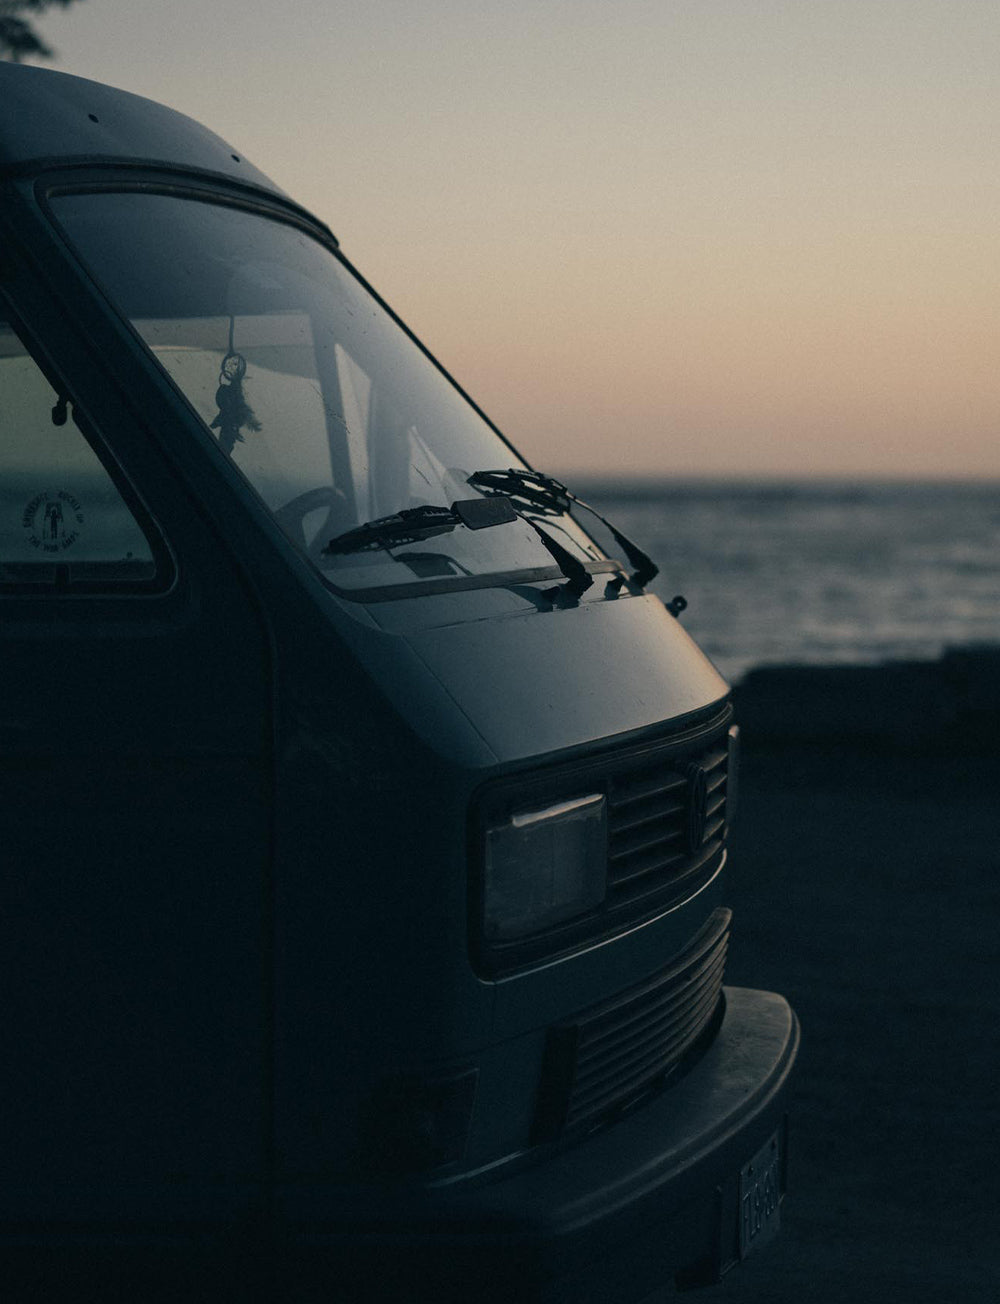 The sunset reflects off the windscreen and bonnet of the classic VW Westy